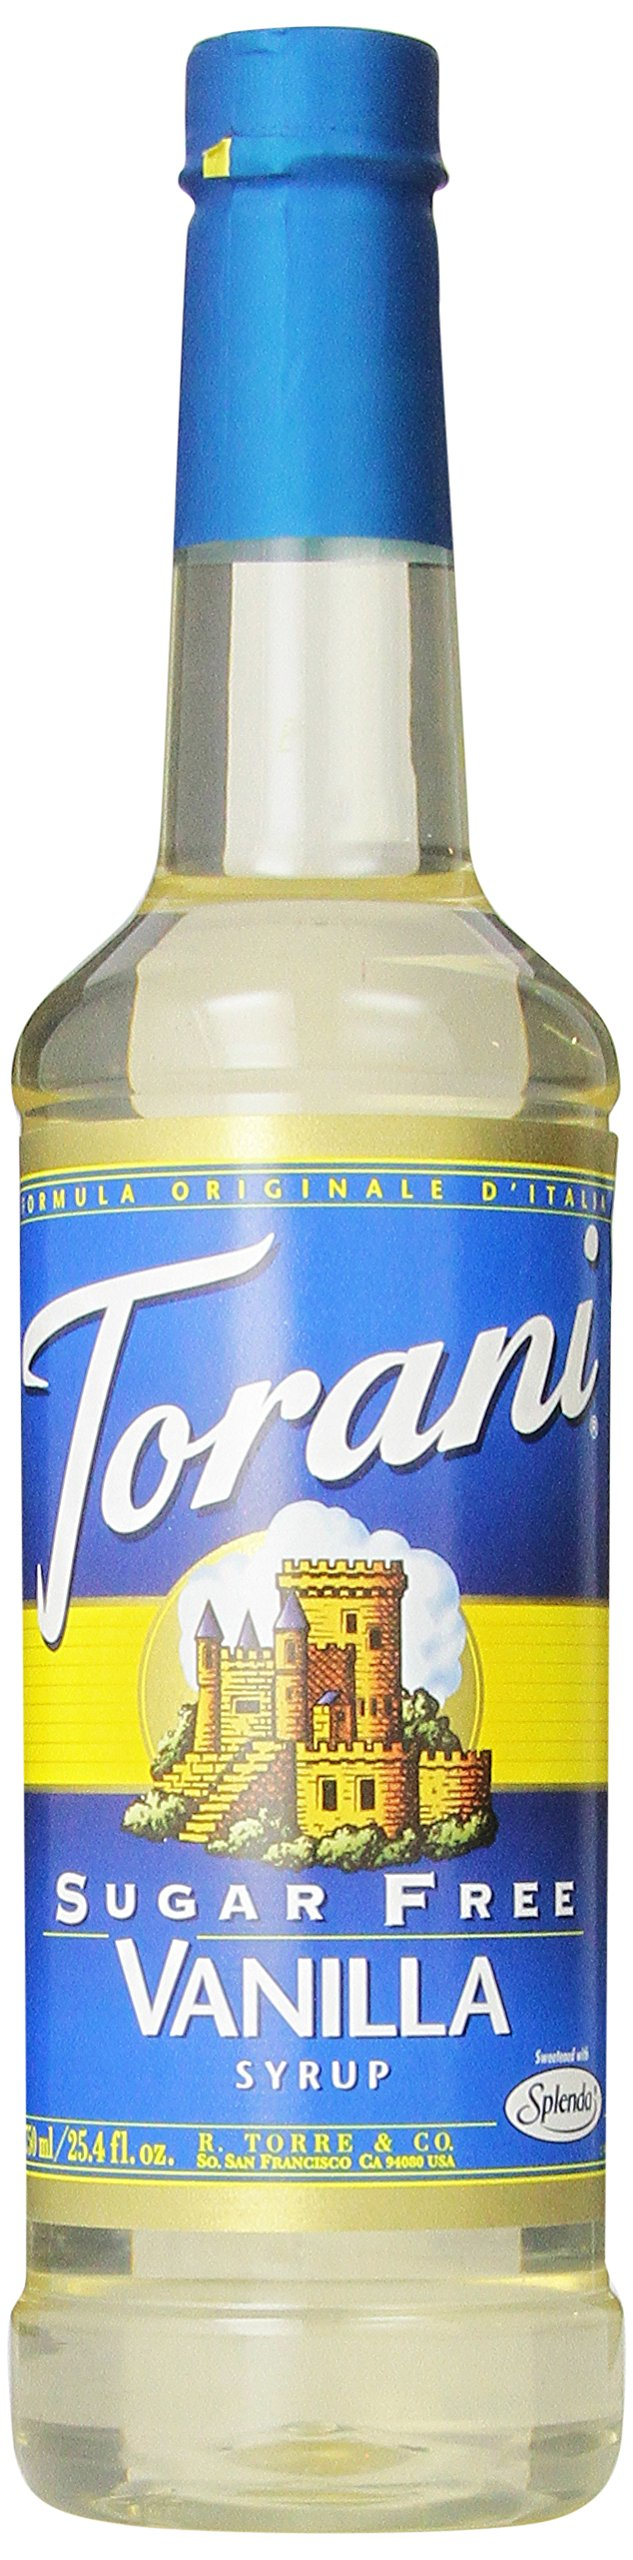 Torani Sugar Free Syrup, Vanilla, 25.4 Ounce (Pack of 4)